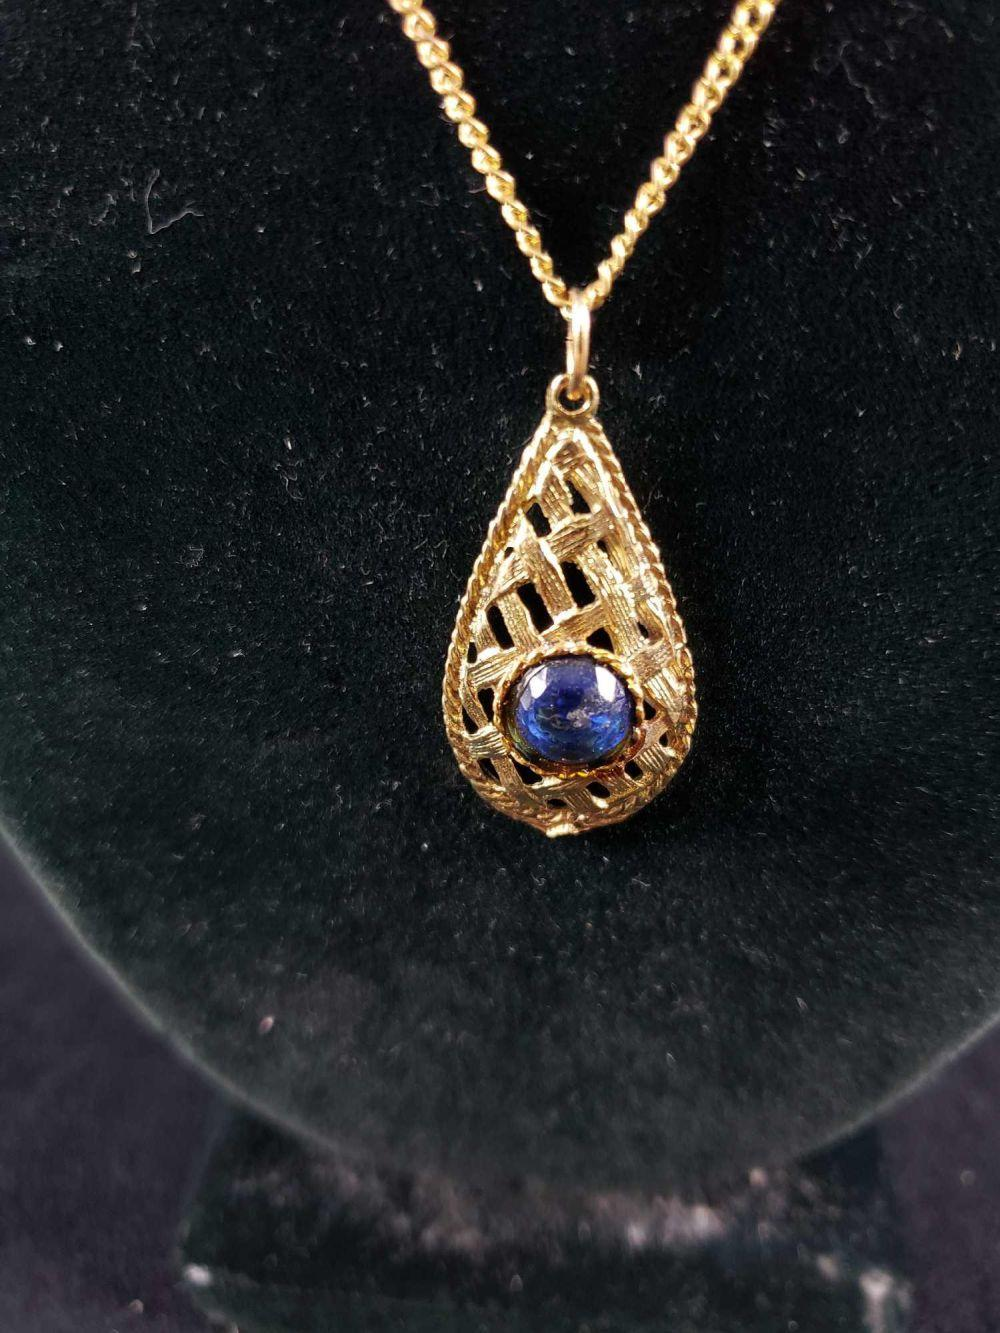 Lot 154: Gold Colored and Faux Sapphire Pendant Necklace